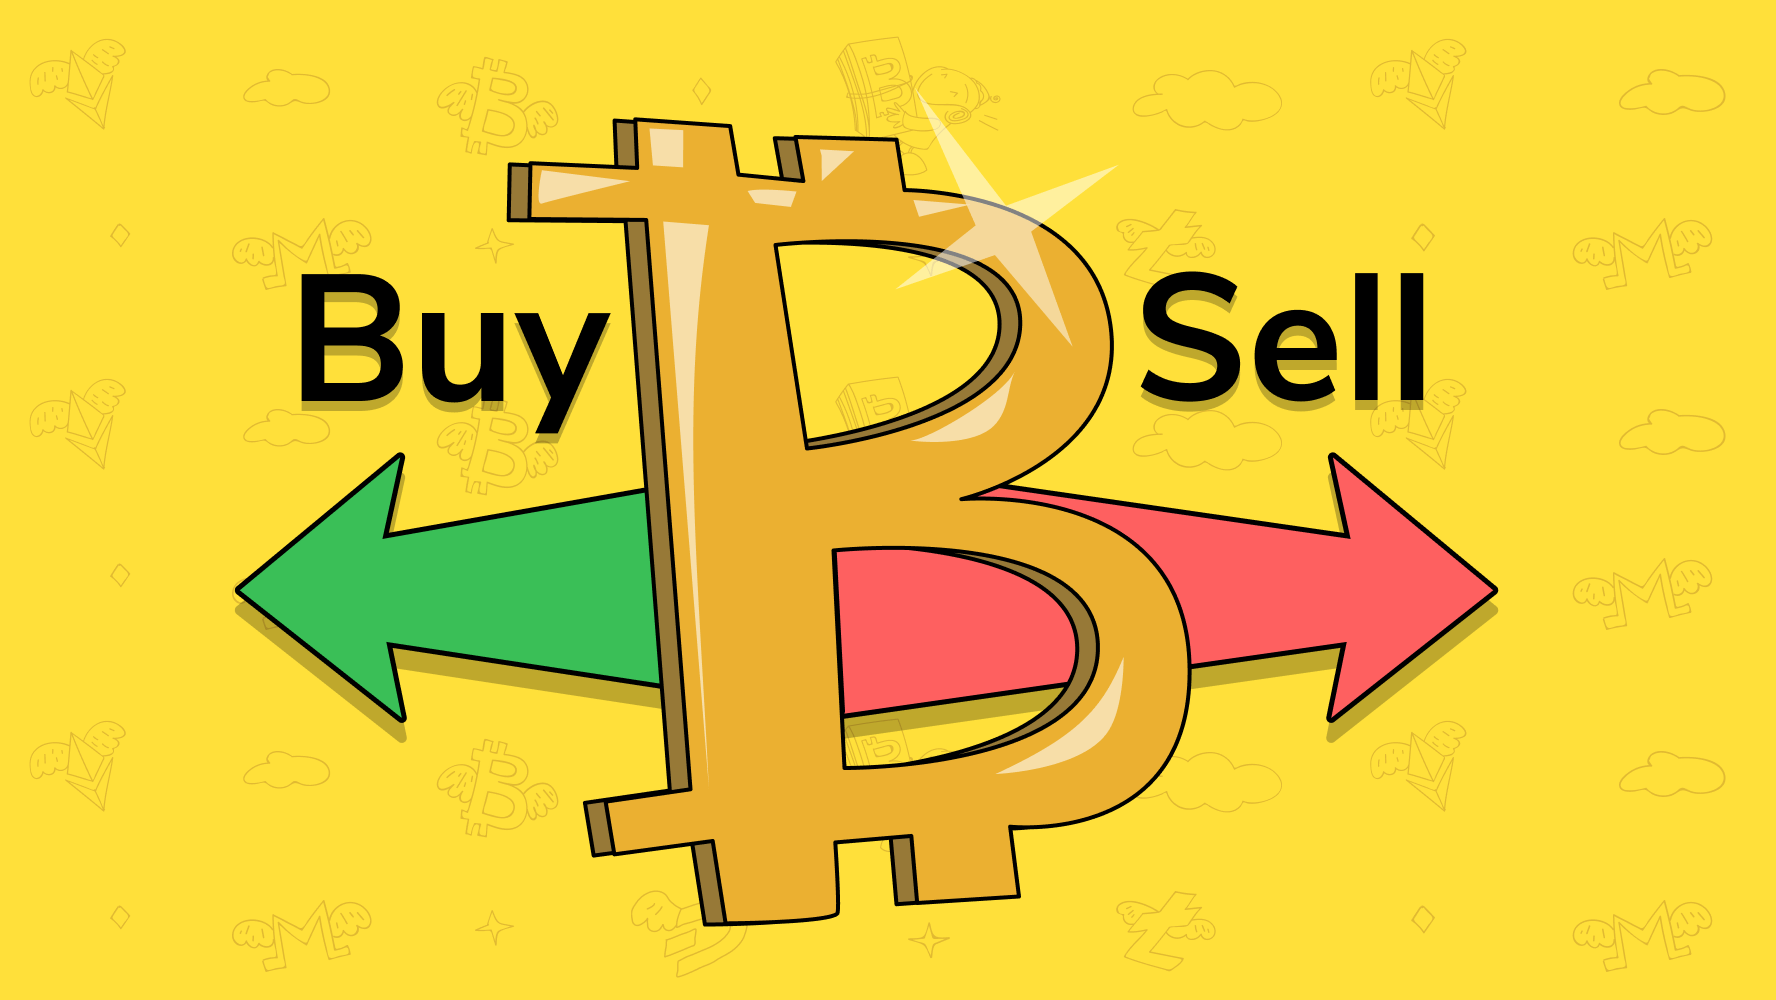 How to trade Bitcoin: Review, Platforms, Automated Bitcoin Trading